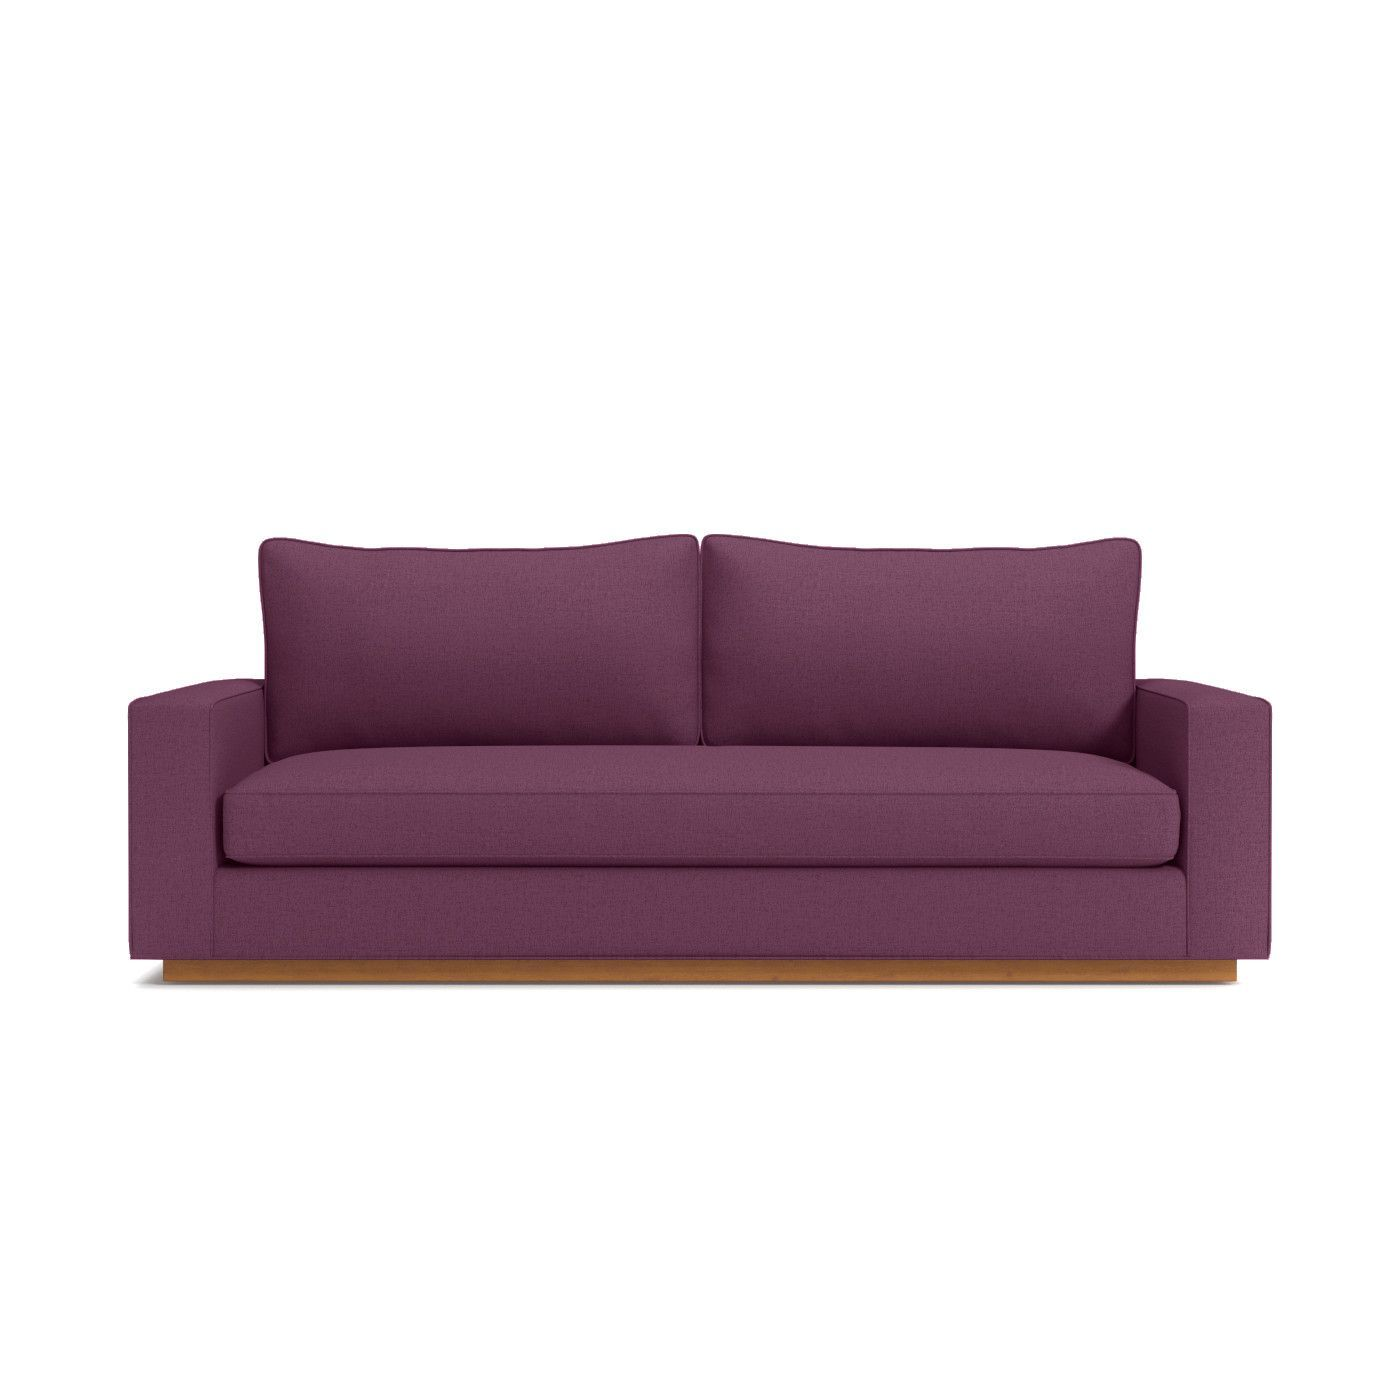 Harper Queen Size Sleeper Sofa Leg Finish Pecan Sleeper